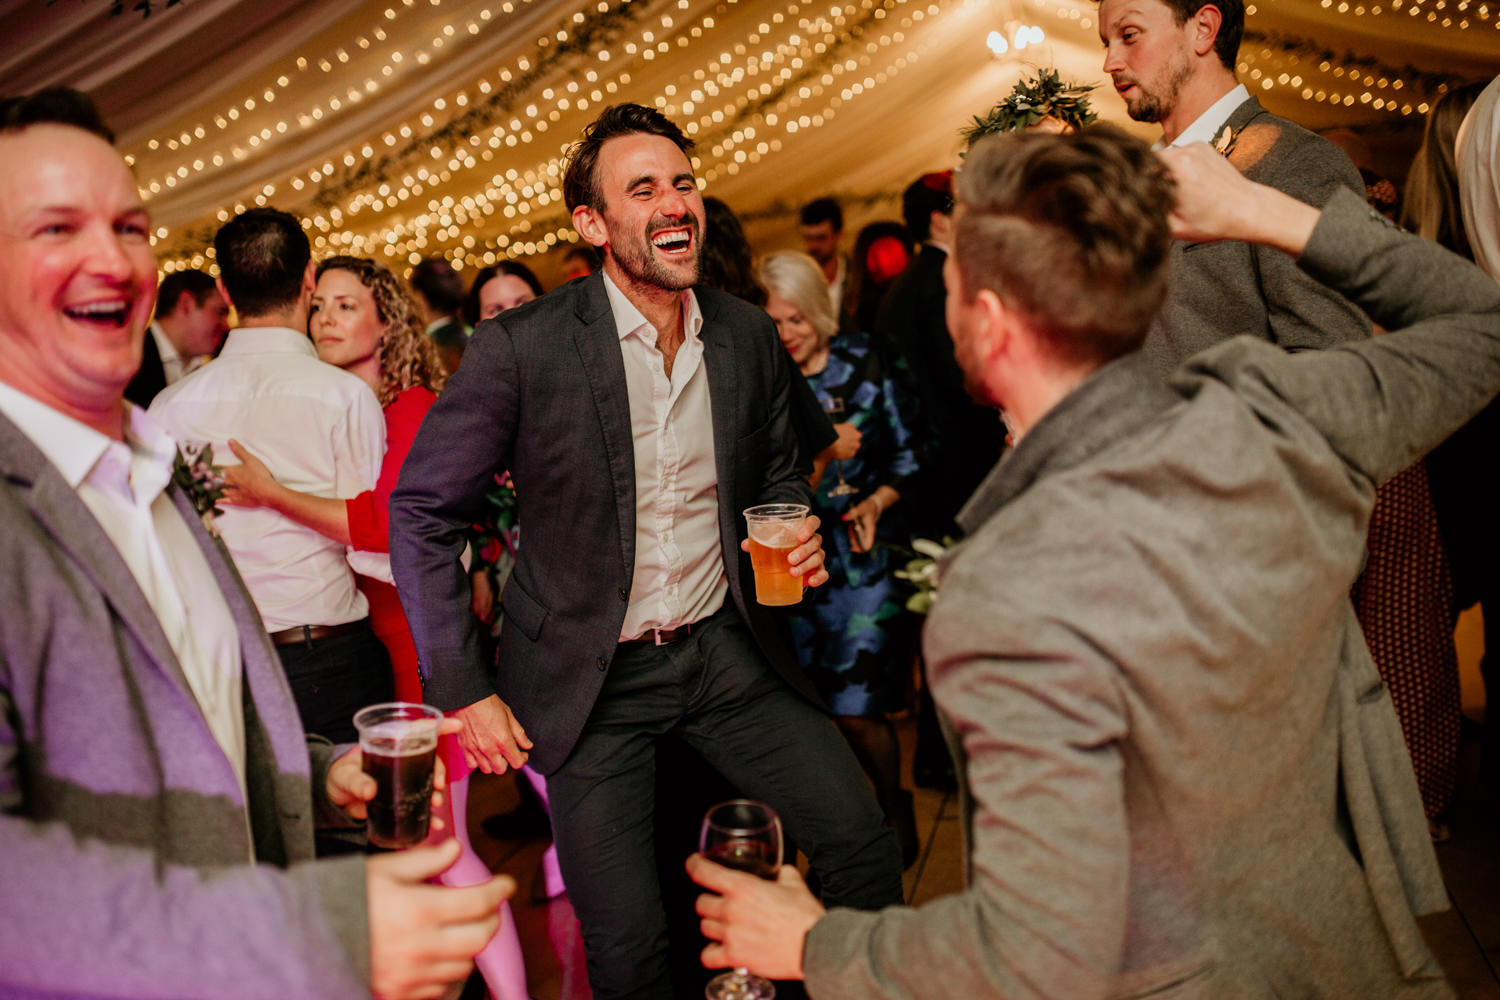 guests laughing and dancing during the wedding reception at Harvest Moon Wedding Scotland